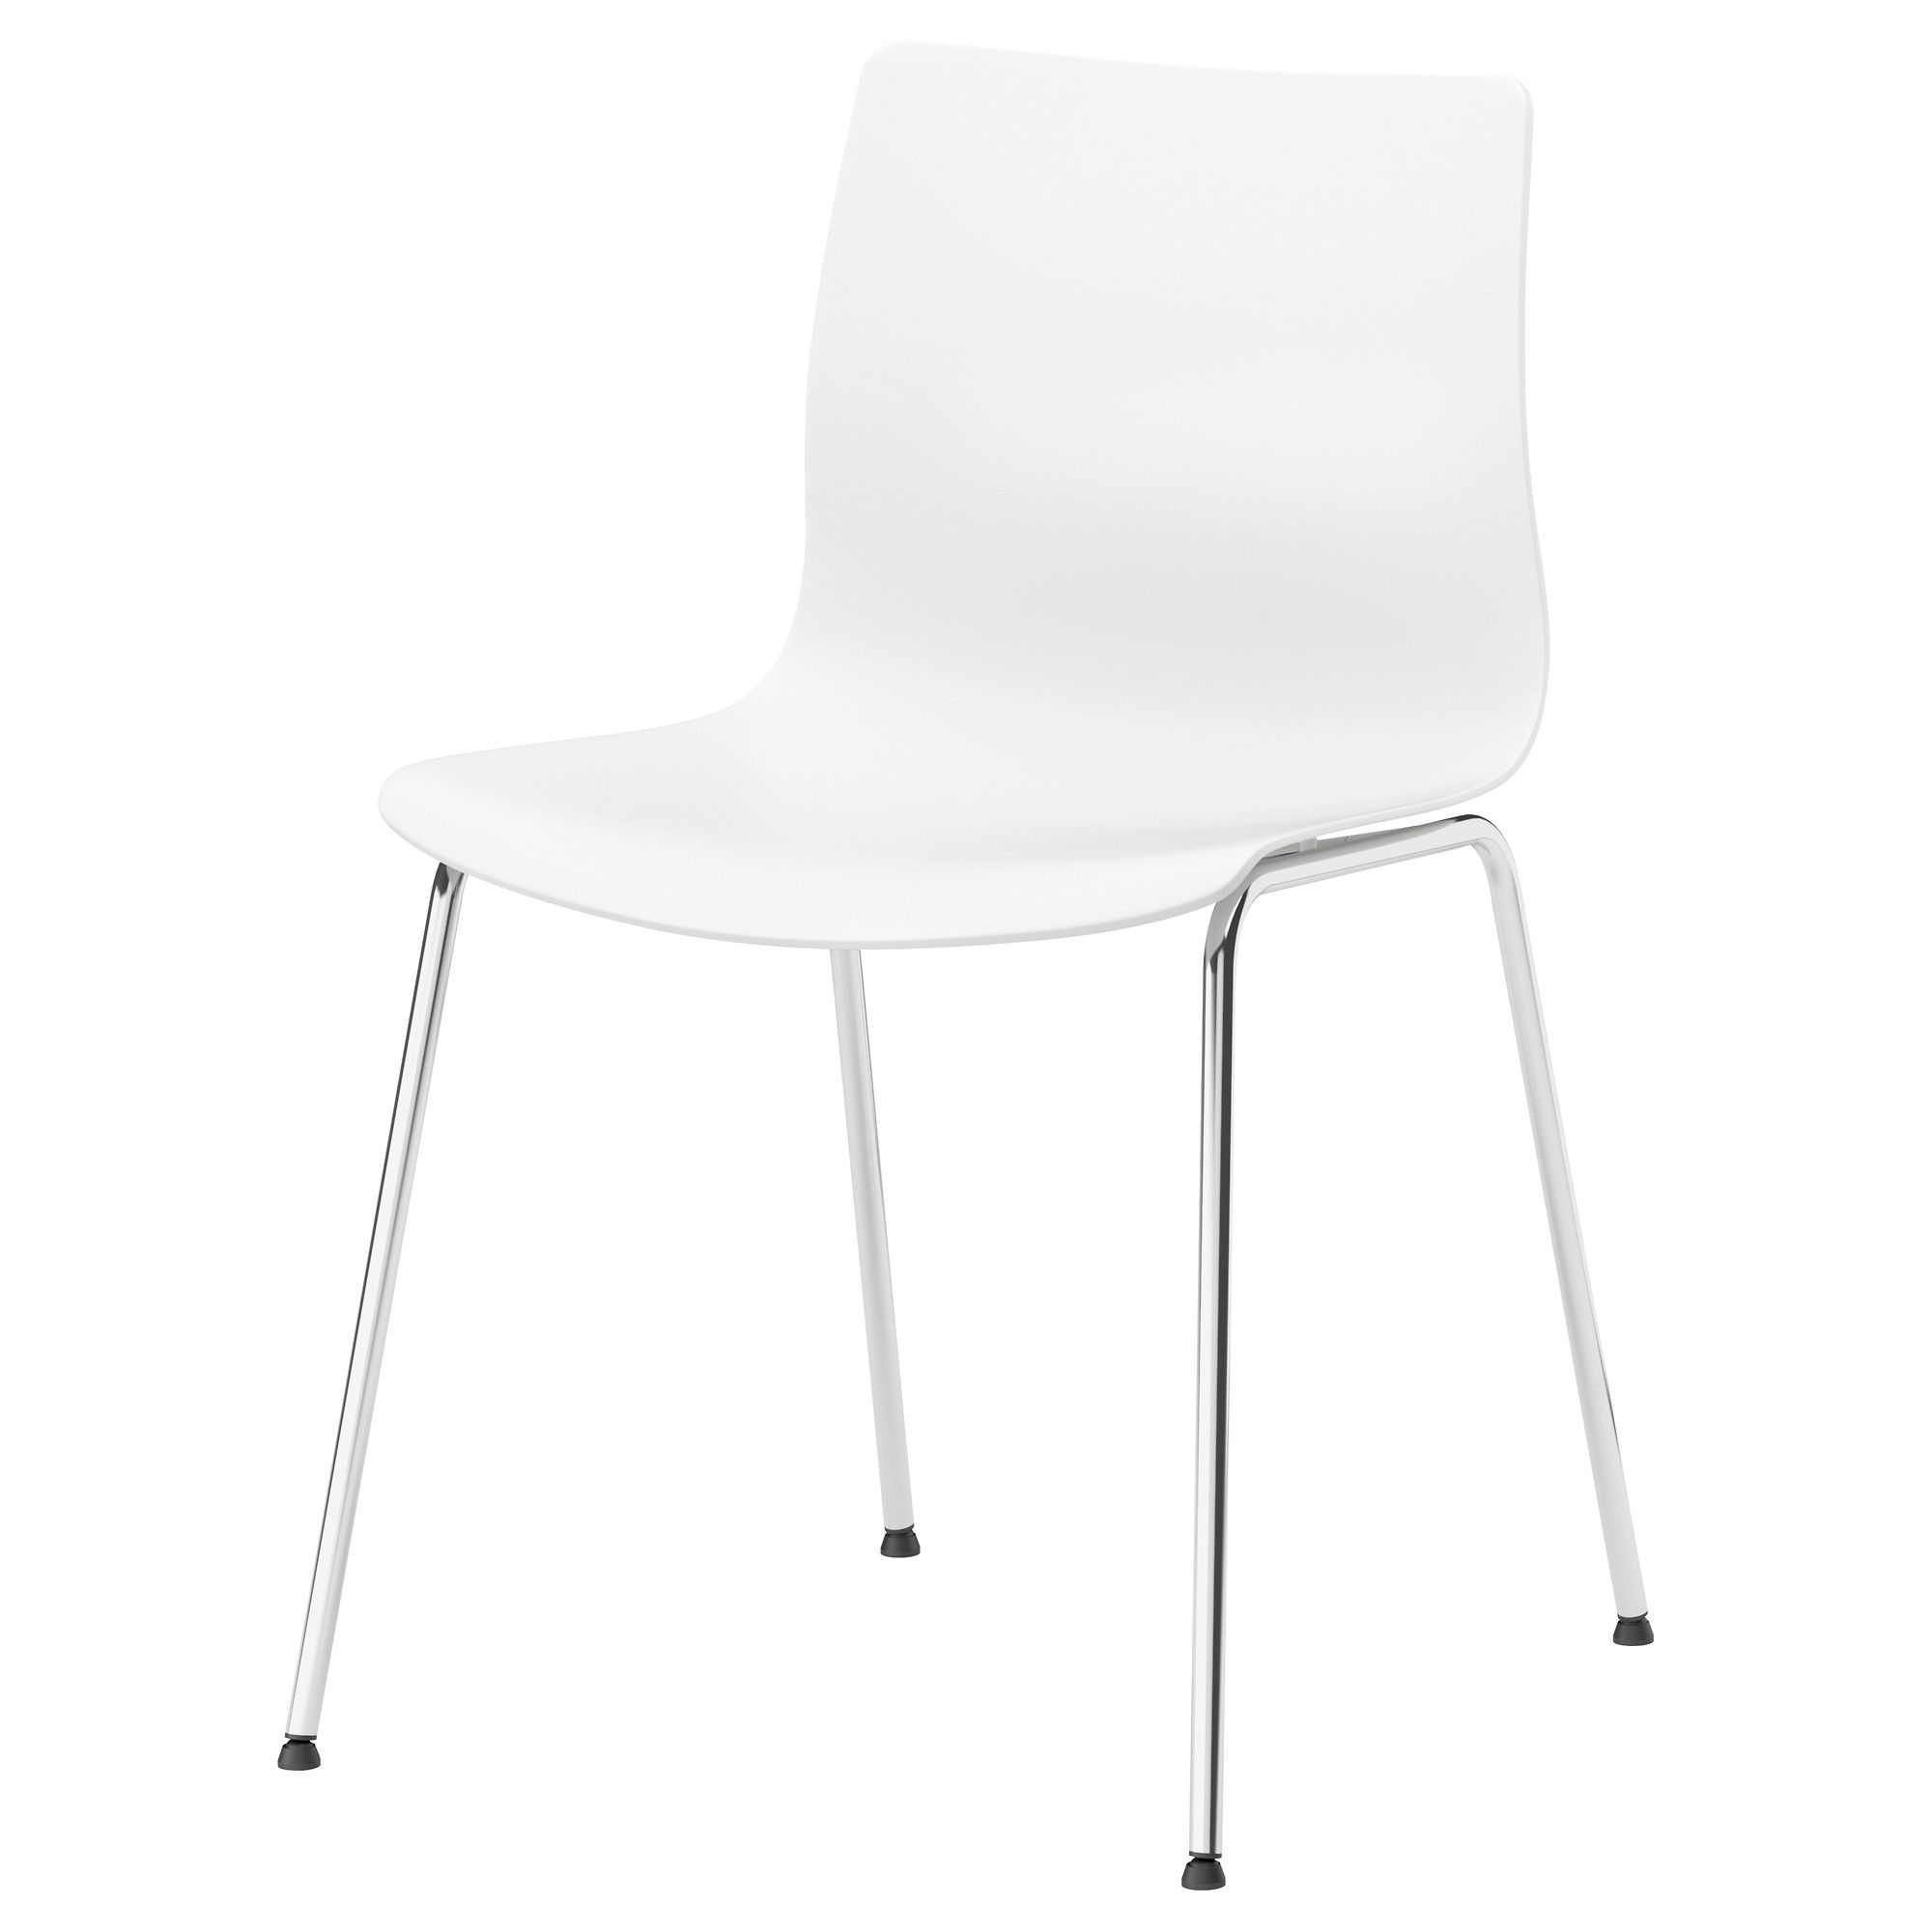 White Chair Ikea Curved Dining Erland Apartment Acquisitions